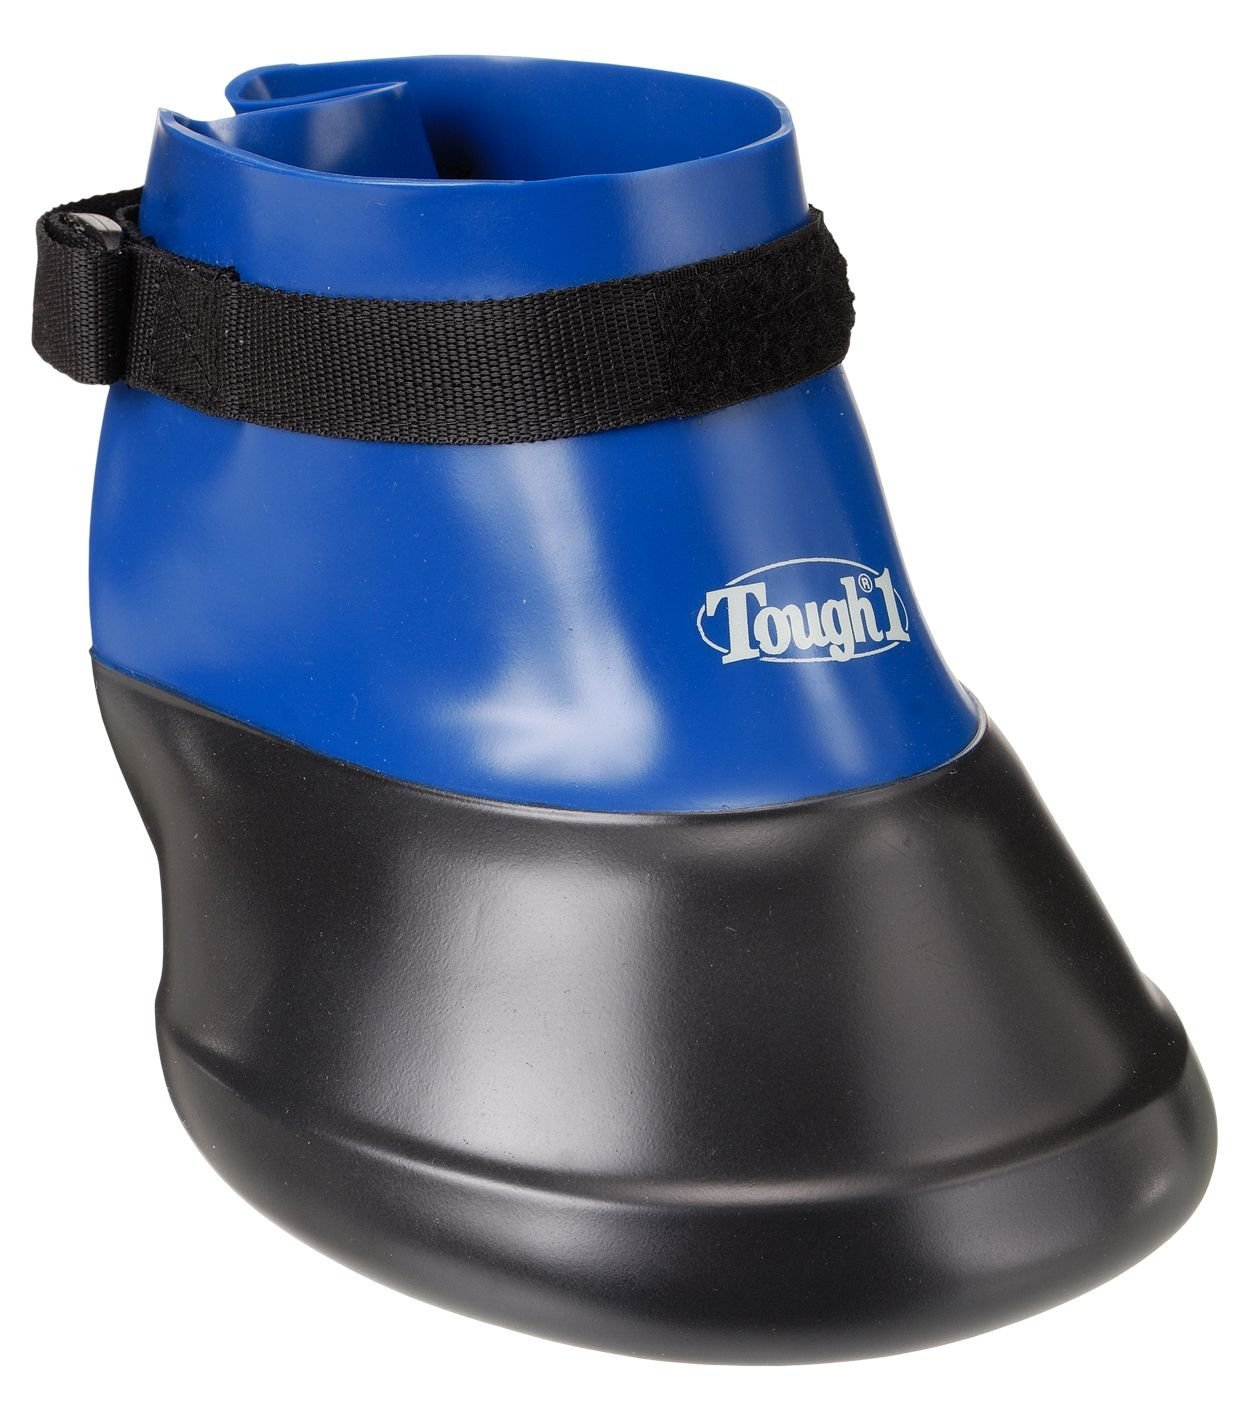 Tough-1 Horse Hoof Saver Boot